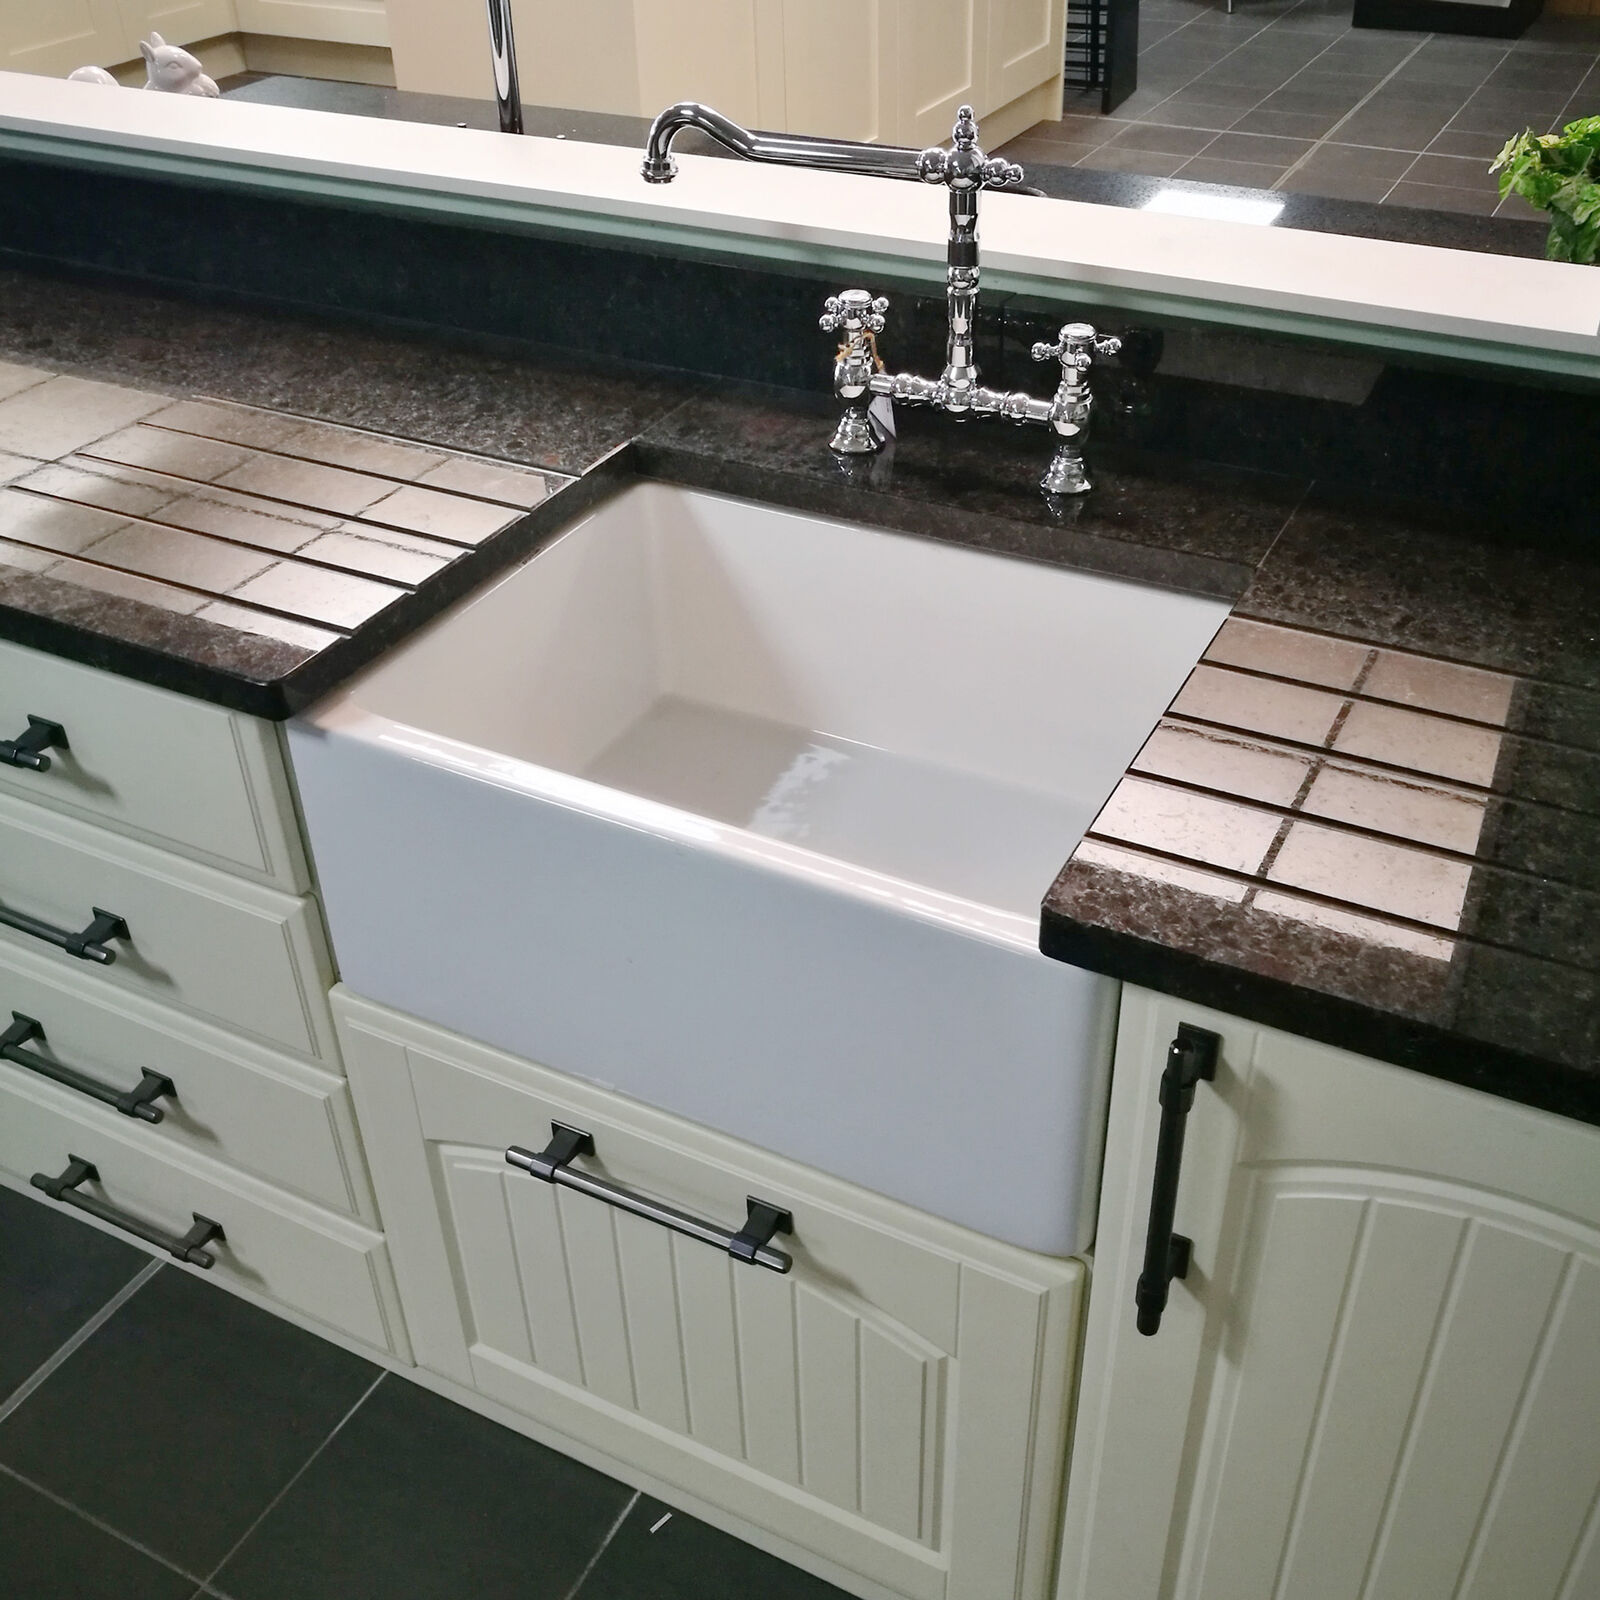 Rak Belfast Kitchen Sink Fireclay